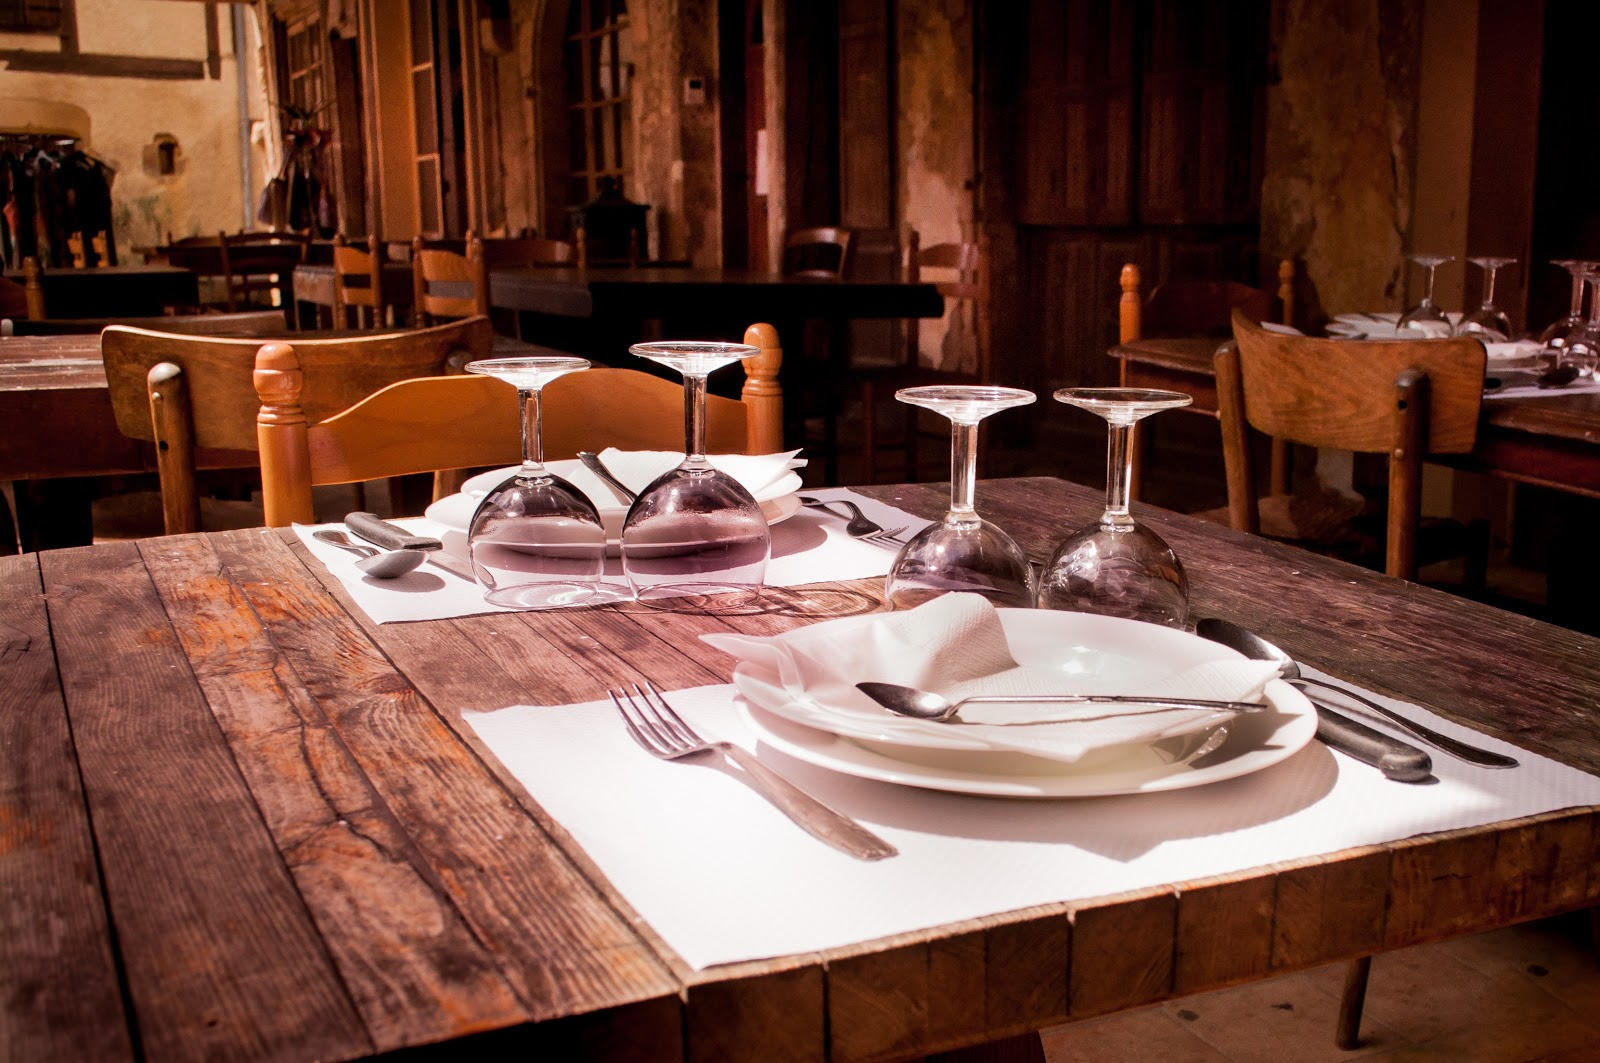 Table set for two in restaurant